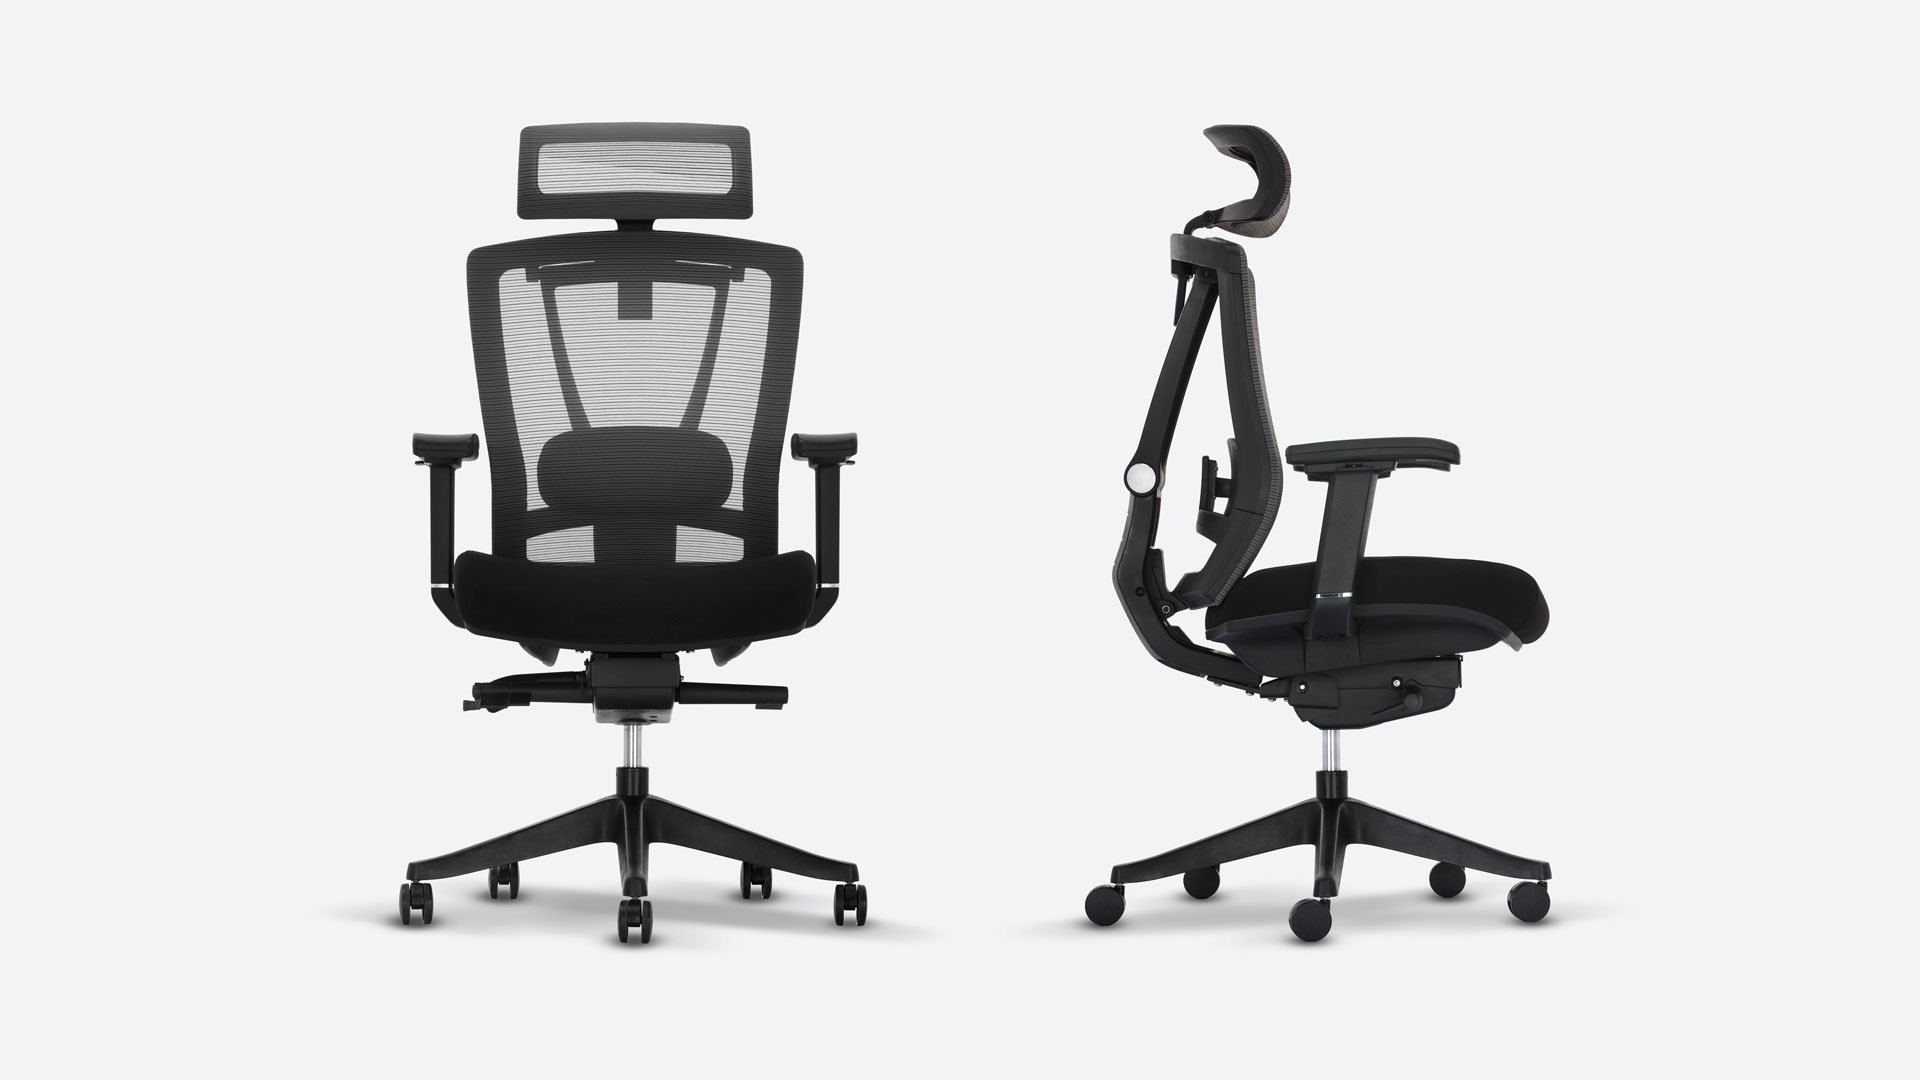 Ergonomic Chair   Best Drafting Chairs For Standing Desk In 2018